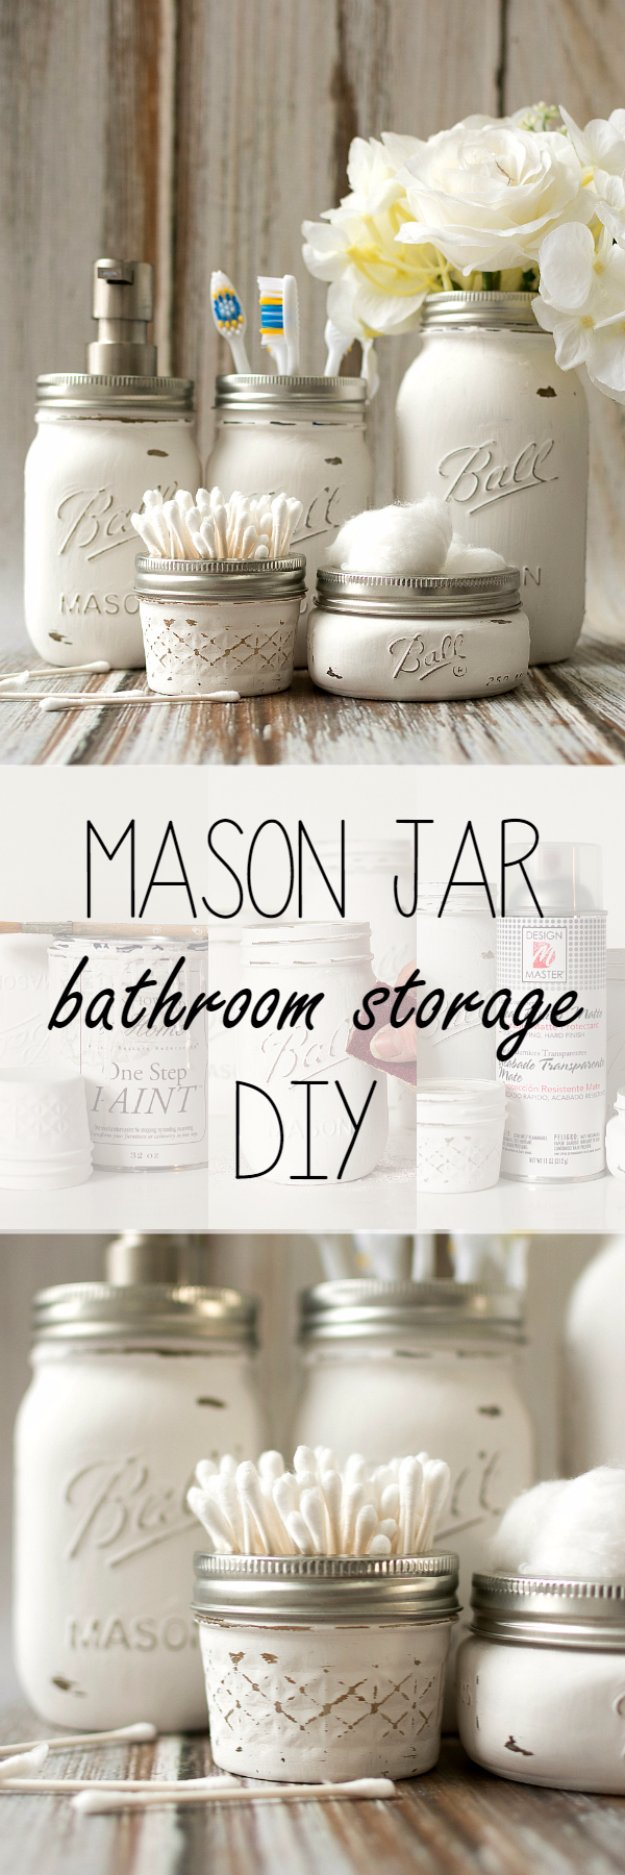 diy bathroom decor ideas mason jar bathroom storage accessories cool do it yourself bath - Bathroom Accessories Diy